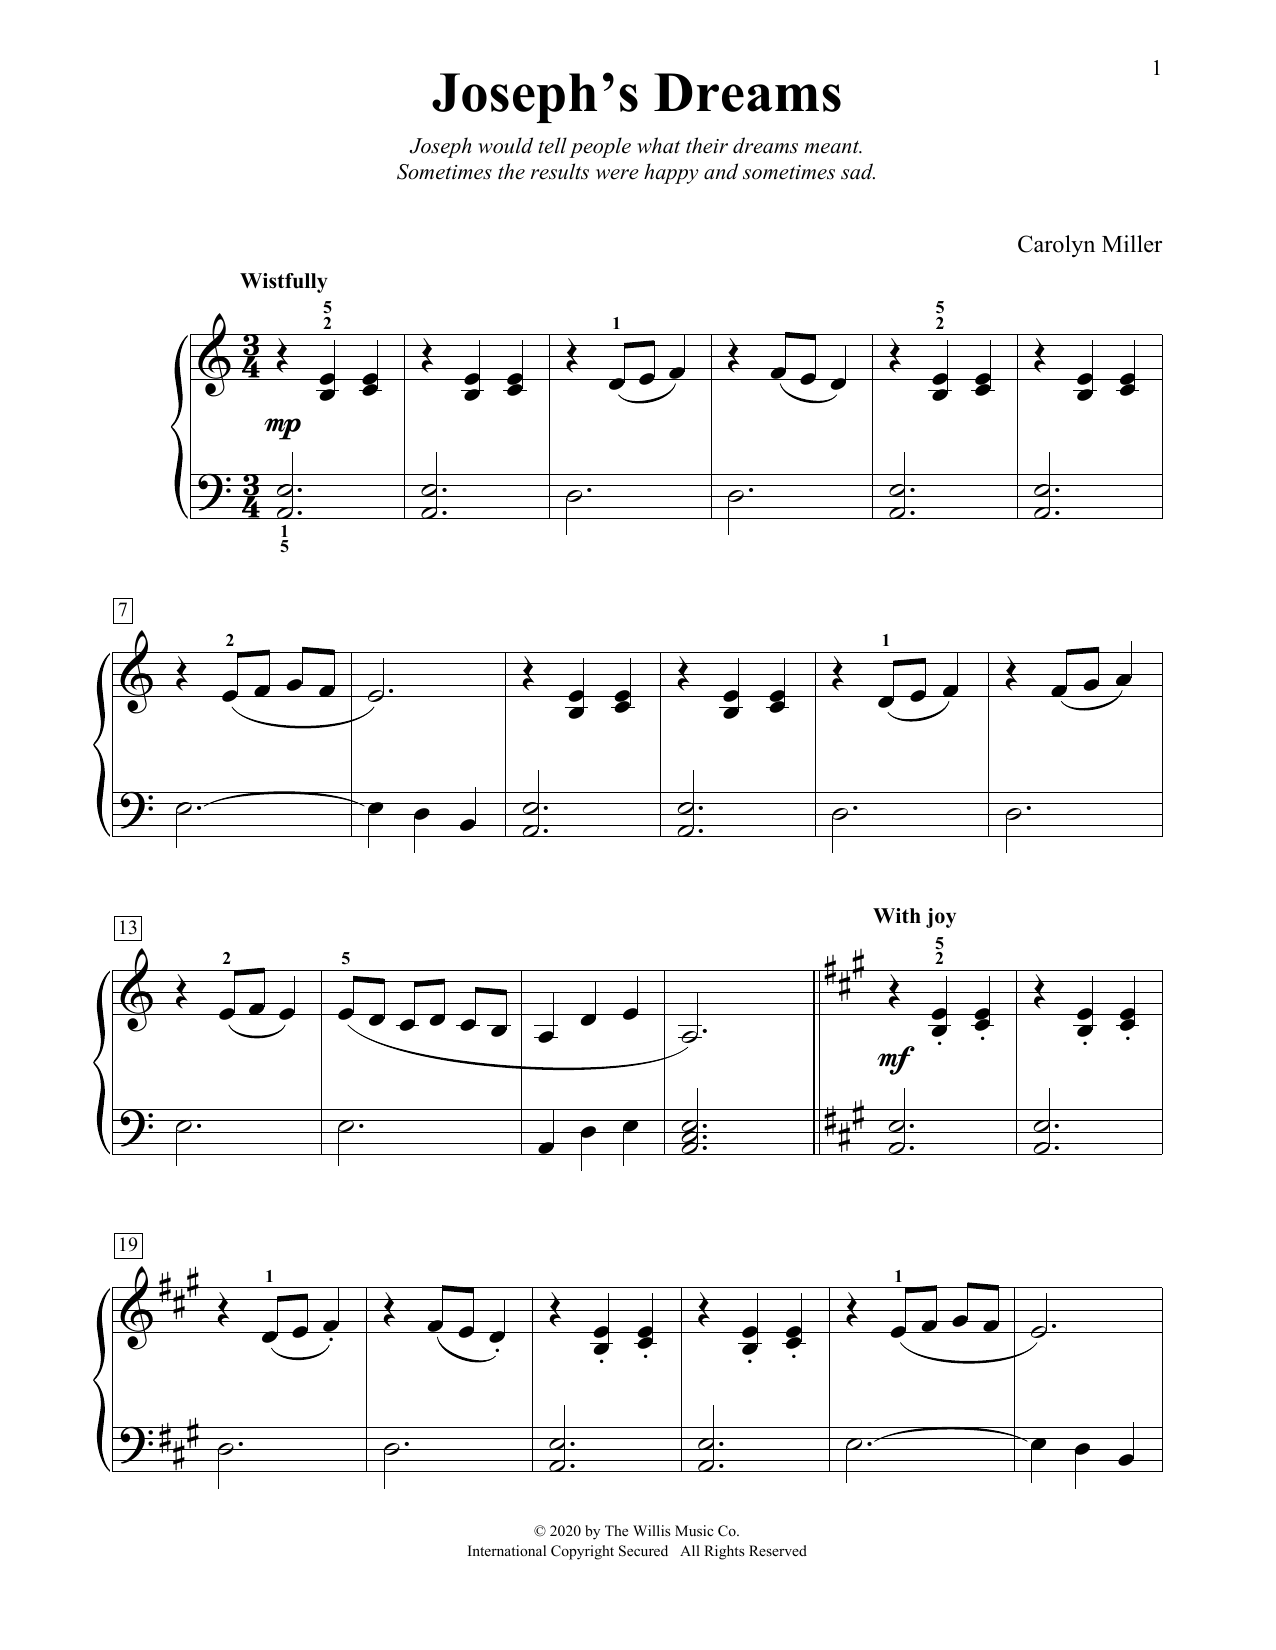 Carolyn Miller Joseph's Dreams sheet music notes and chords. Download Printable PDF.